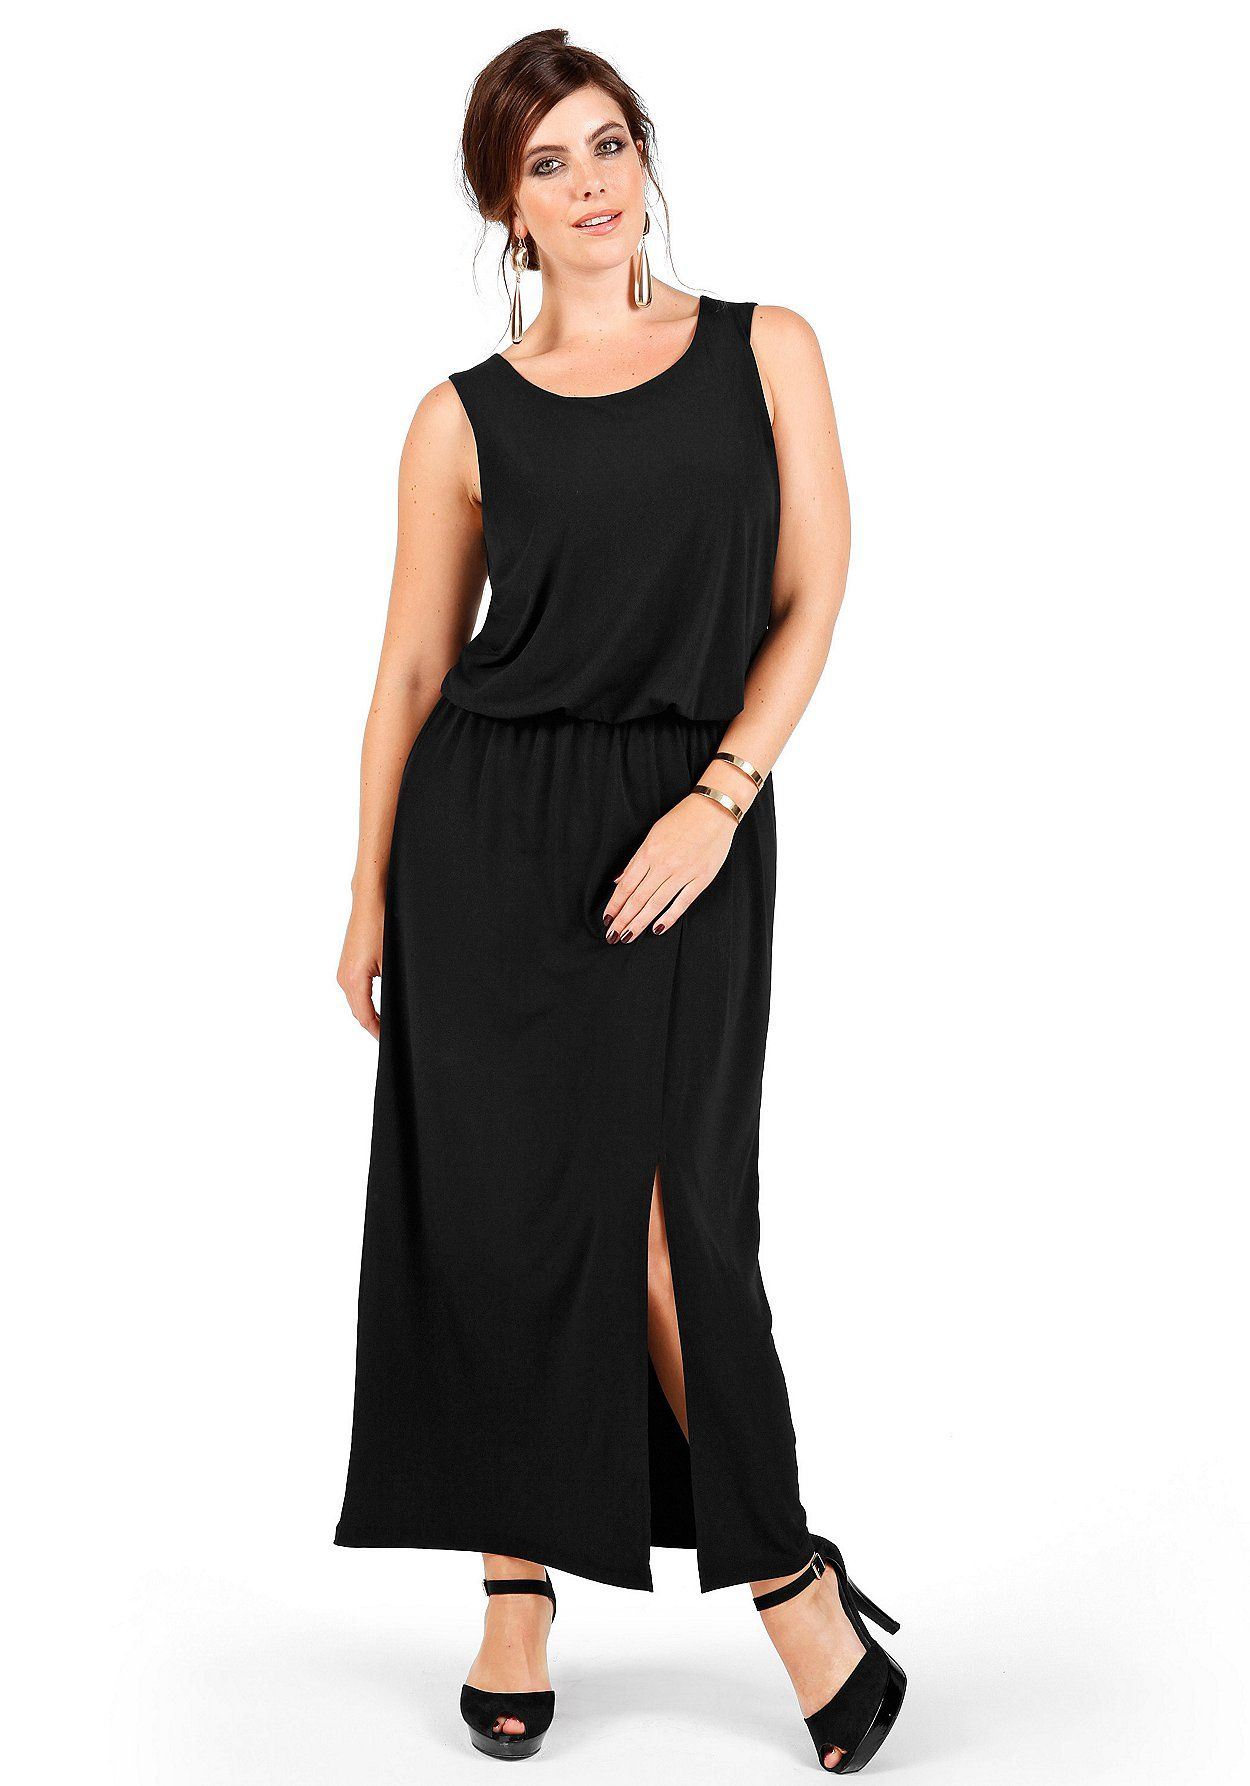 plussize #plussizefashion #fashion #Kleider #dress #sheego